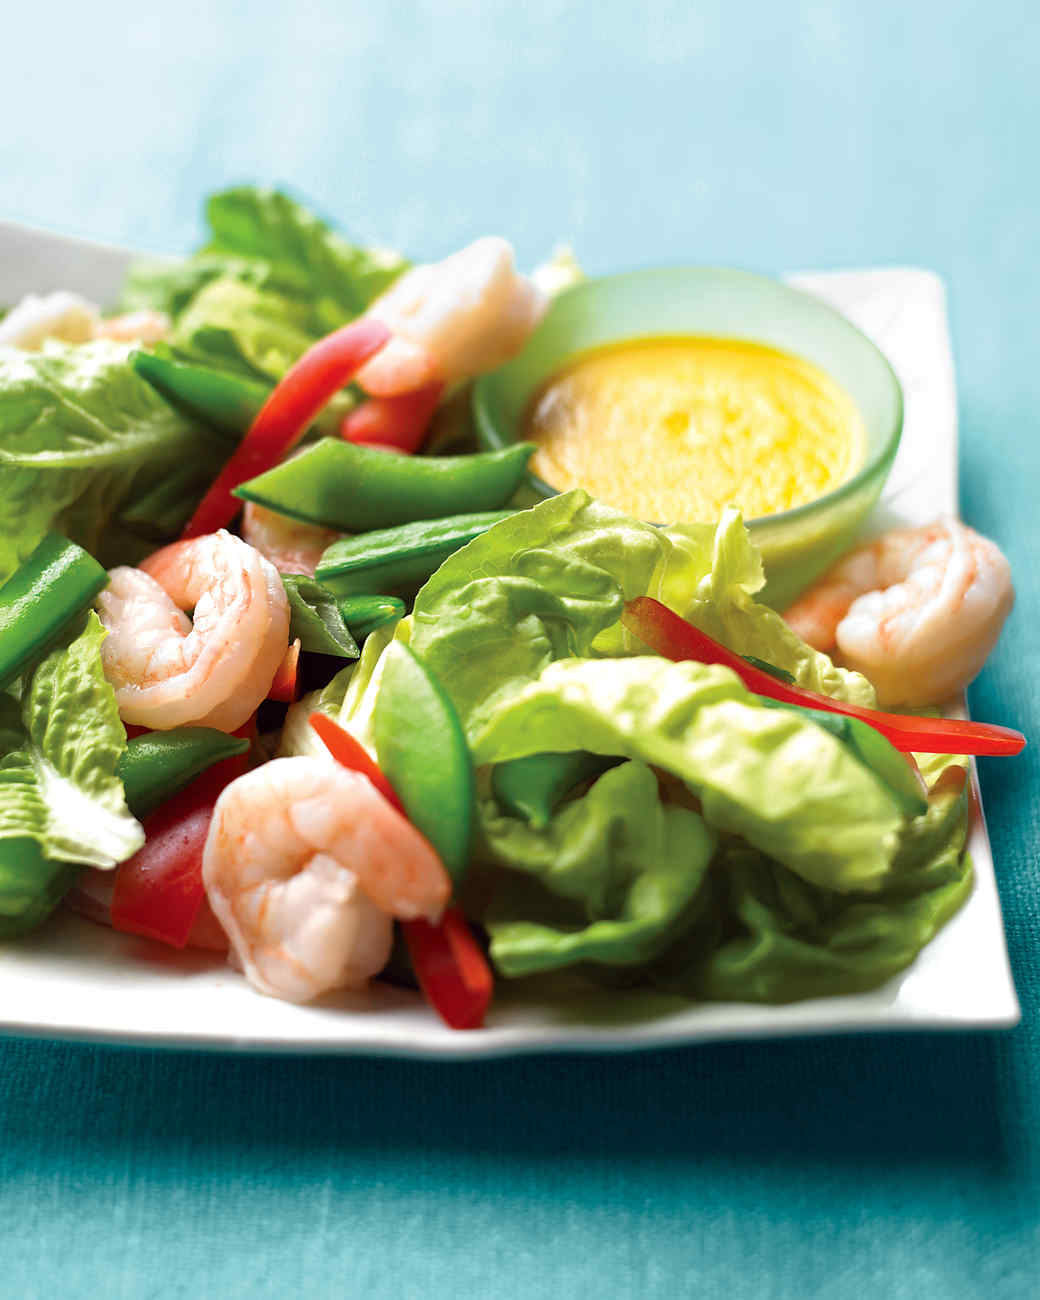 Marvelous Shrimp And Snap Pea Salad With Ginger Dressing